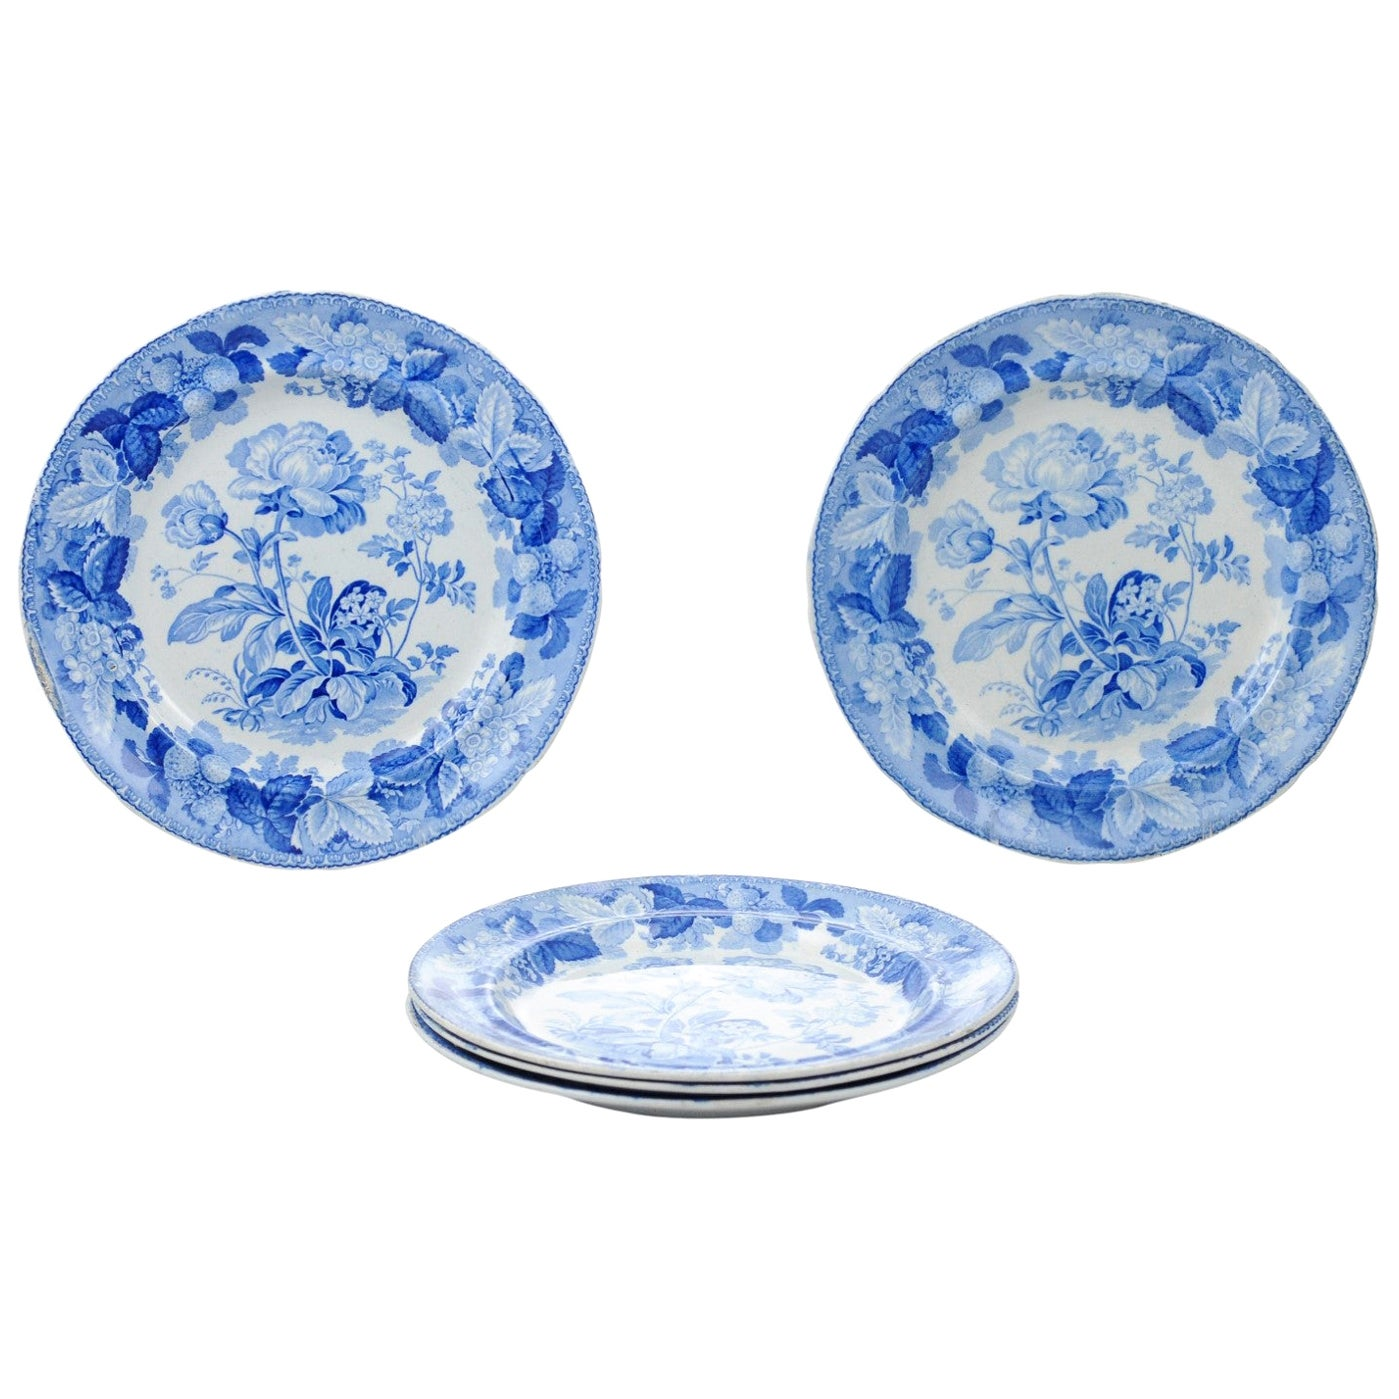 Five English 19th Century Blue and White Porcelain Plates with Floral Pattern